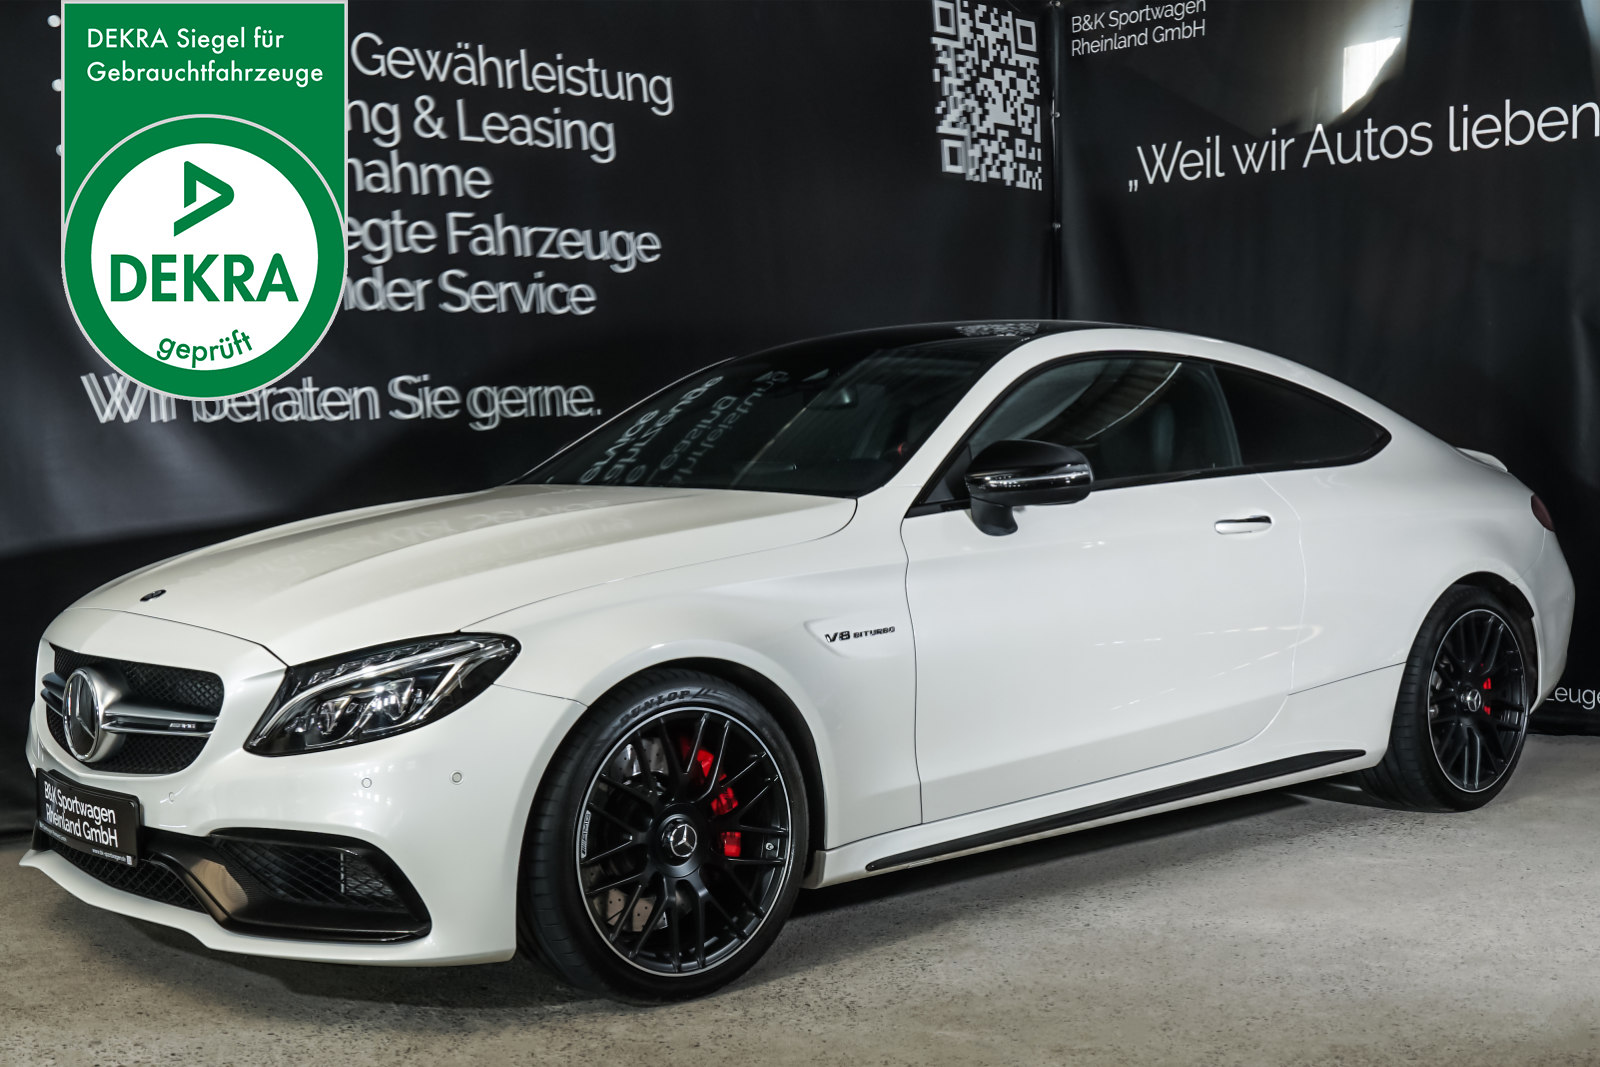 Mercedes-Benz_C63S_AMG_Coupe_Weiss_SchwarzRot_MB-9509_Plakette_w